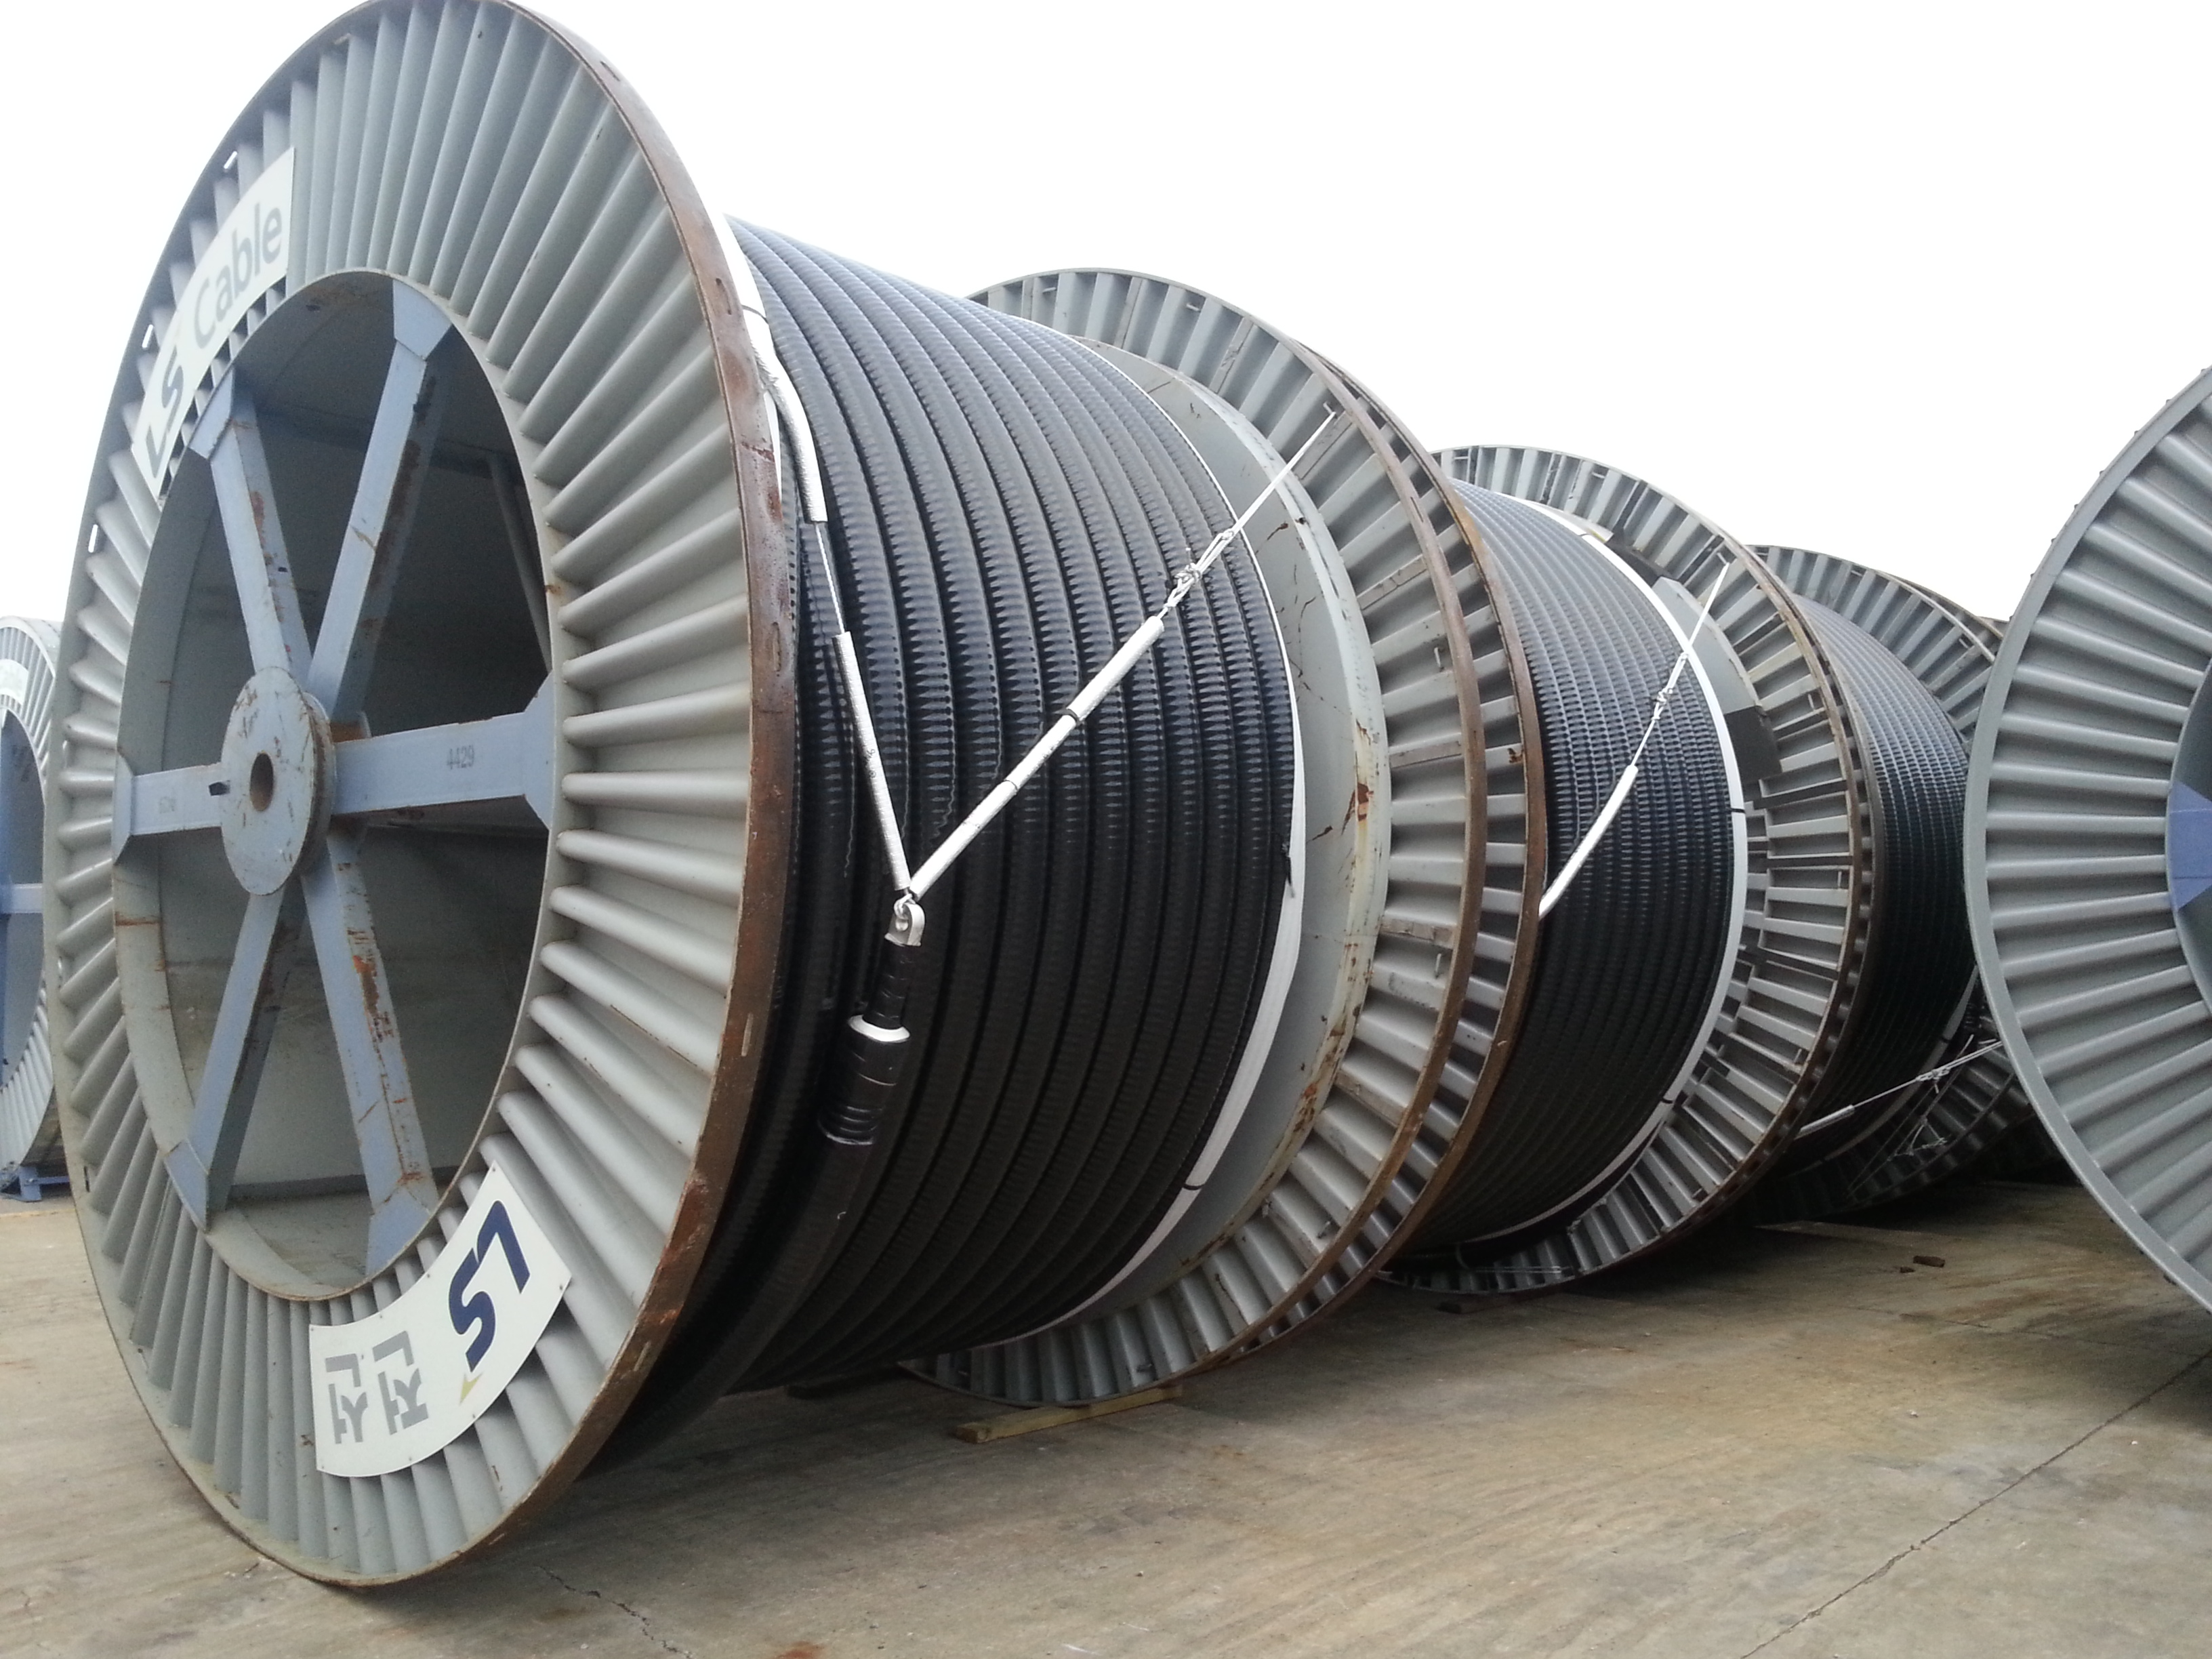 File:345 kV high voltage cables manufactured by LS Cable & System ...